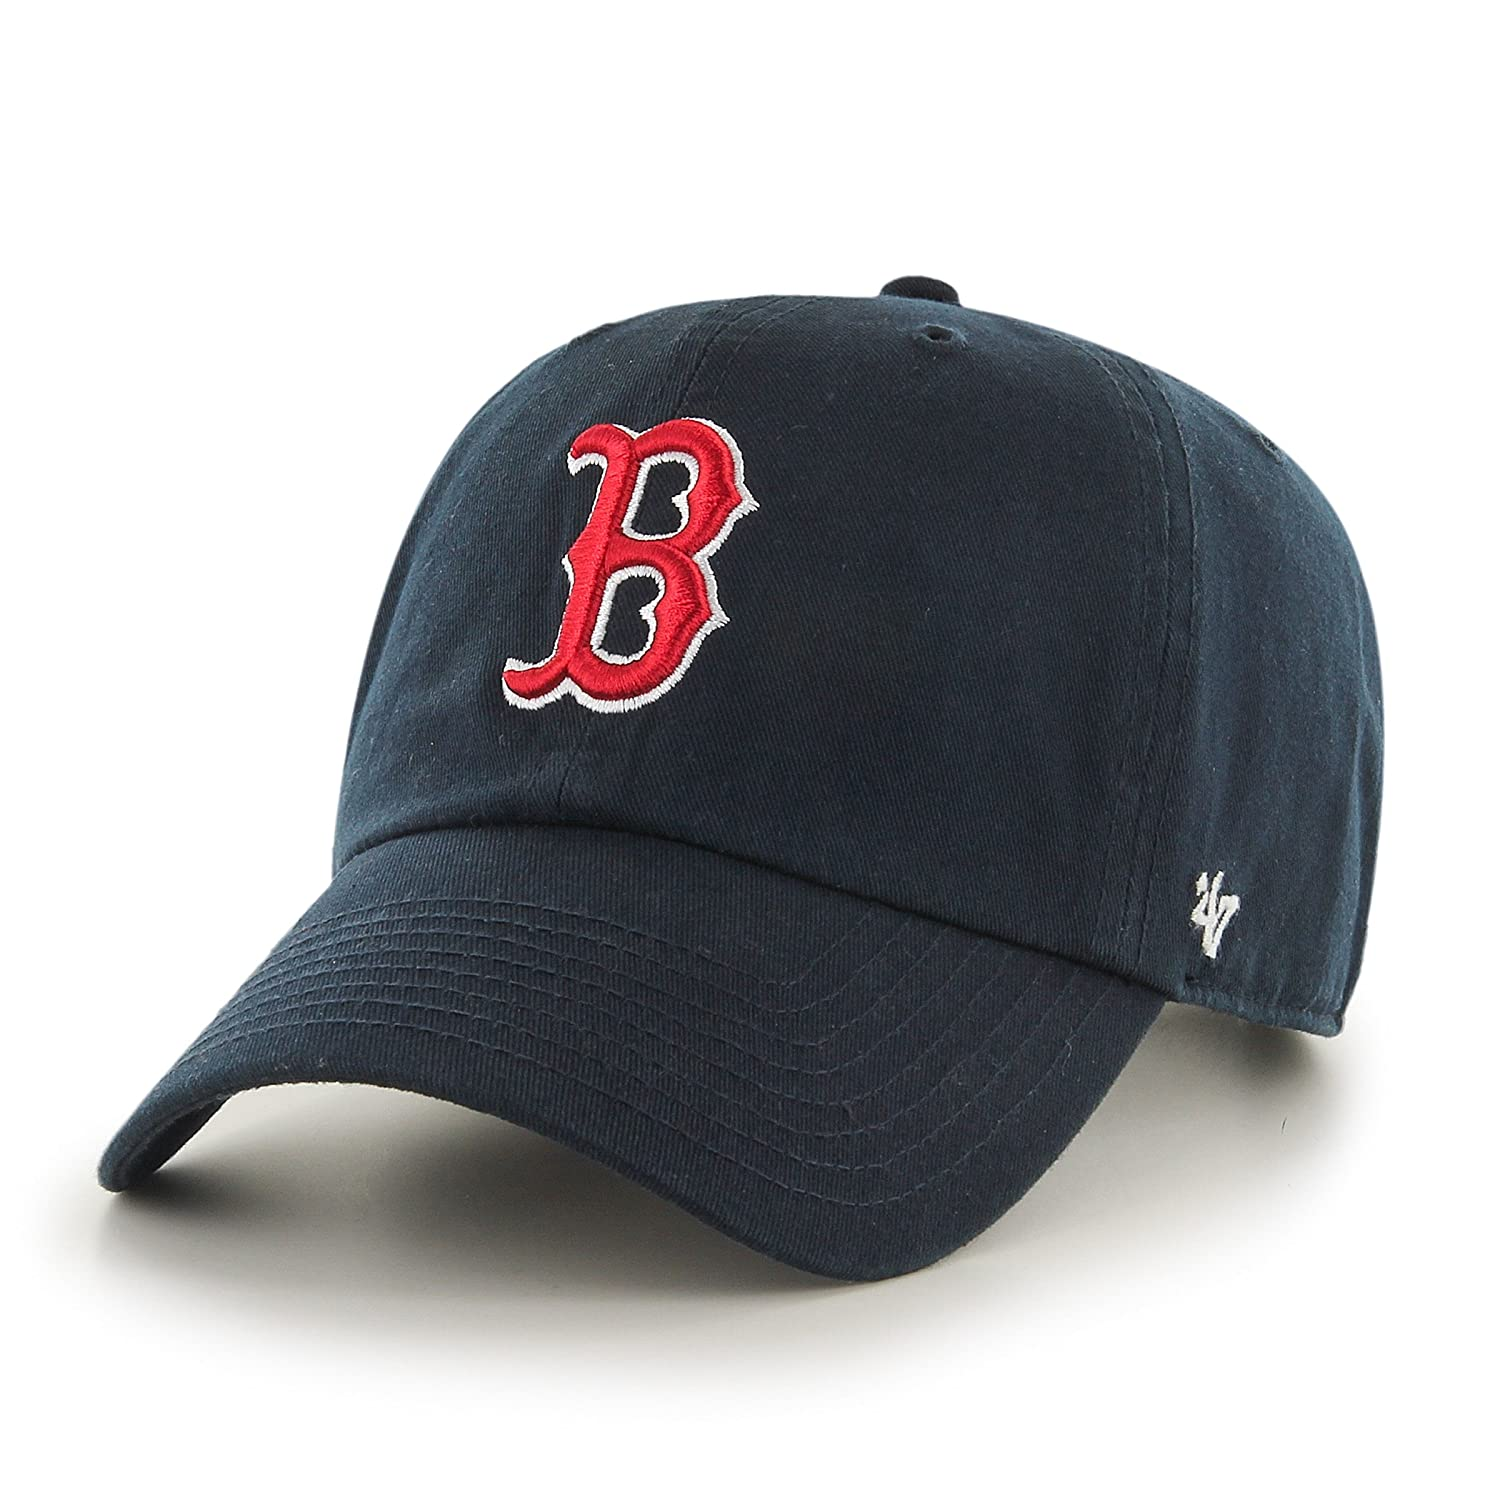 561cbd89796 Amazon.com  Boston Red Sox - MLB   Fan Shop  Sports   Outdoors